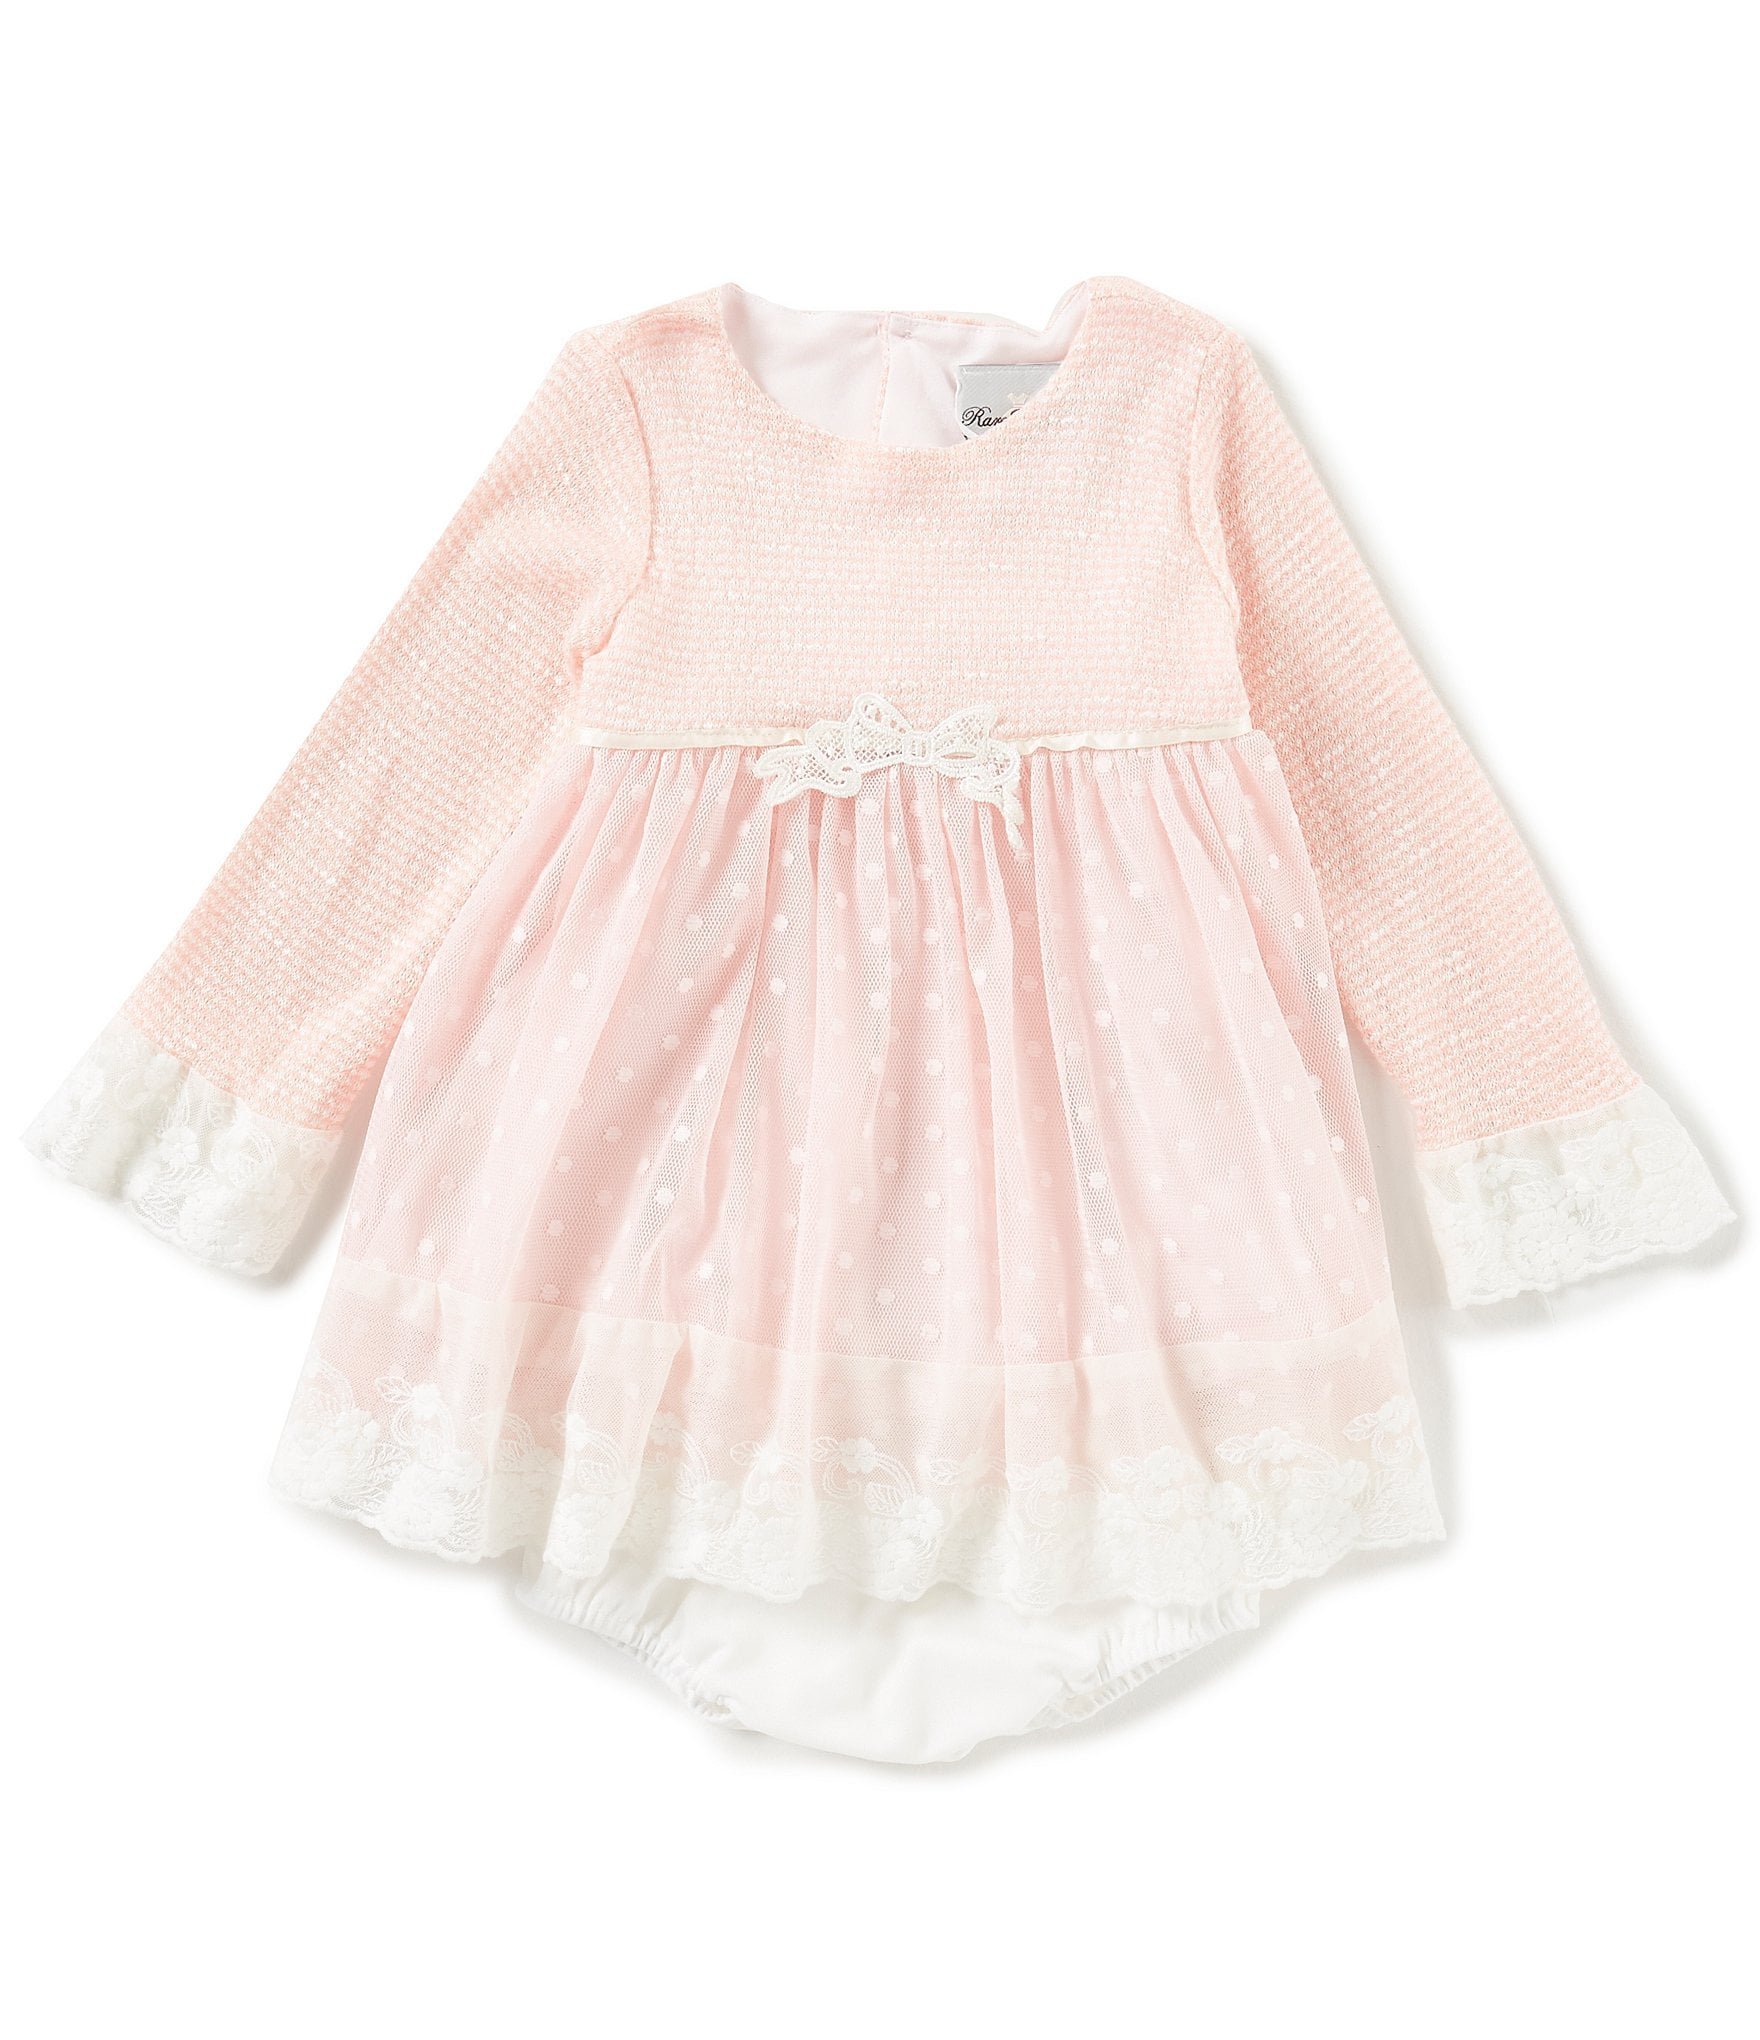 Rare Editions Baby Girls 12 24 Months Embroidered Dress